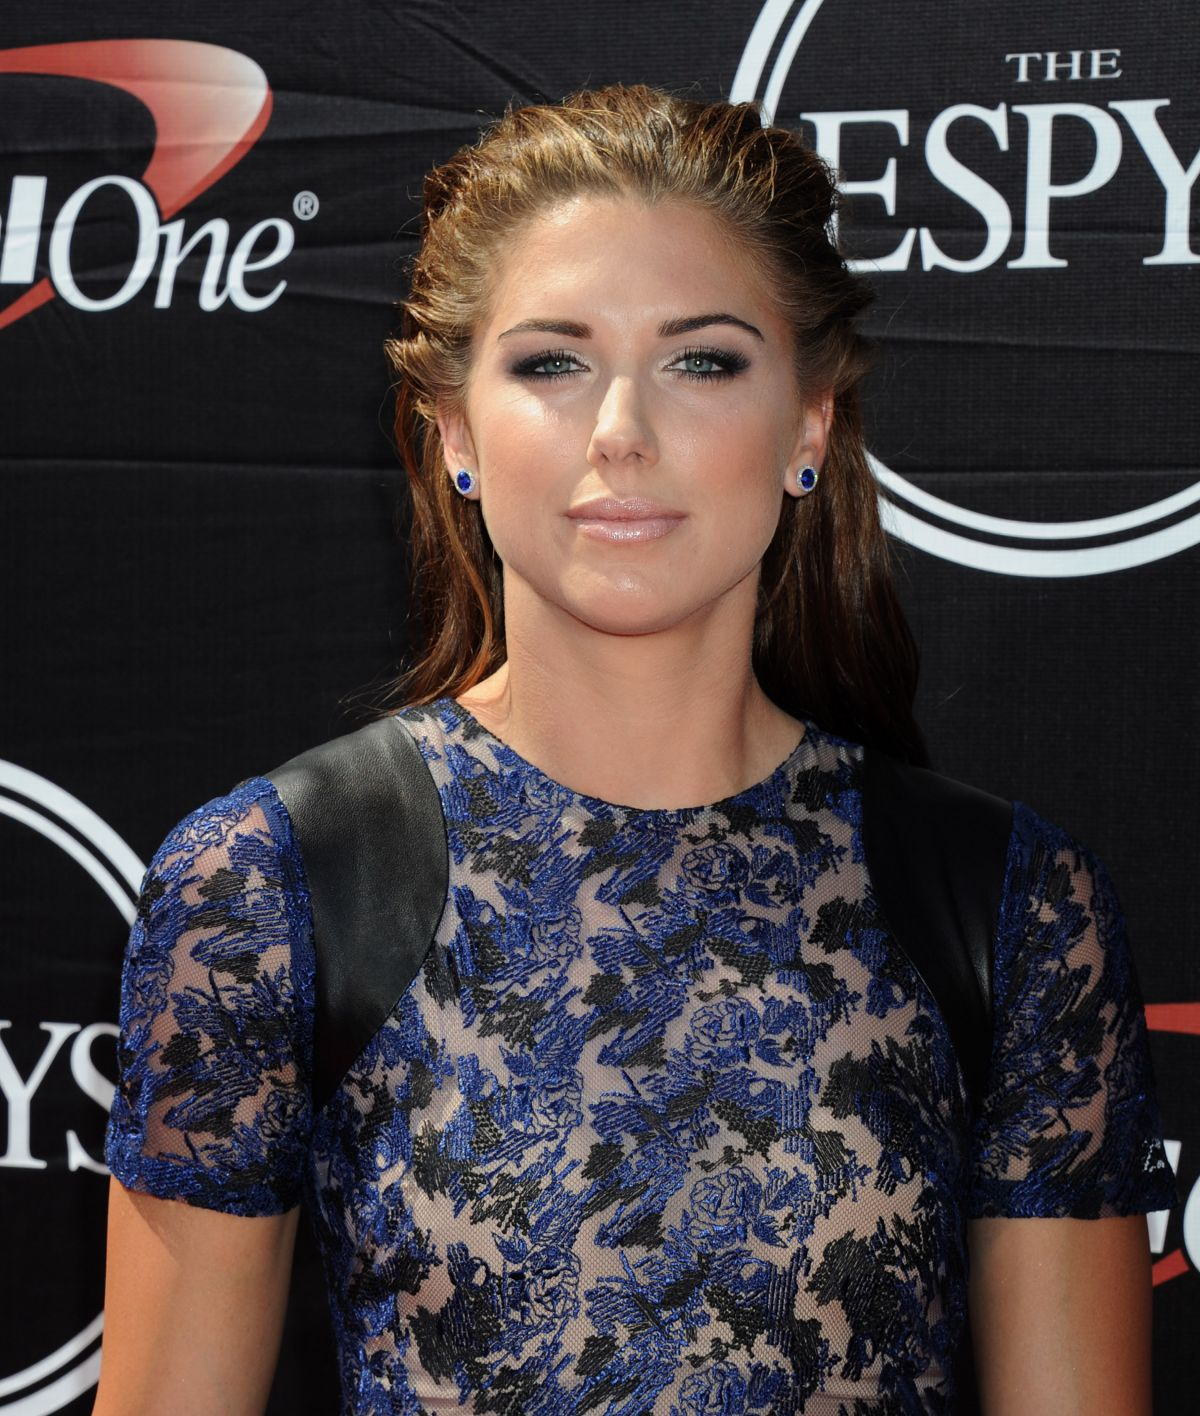 alex morgan - photo #46